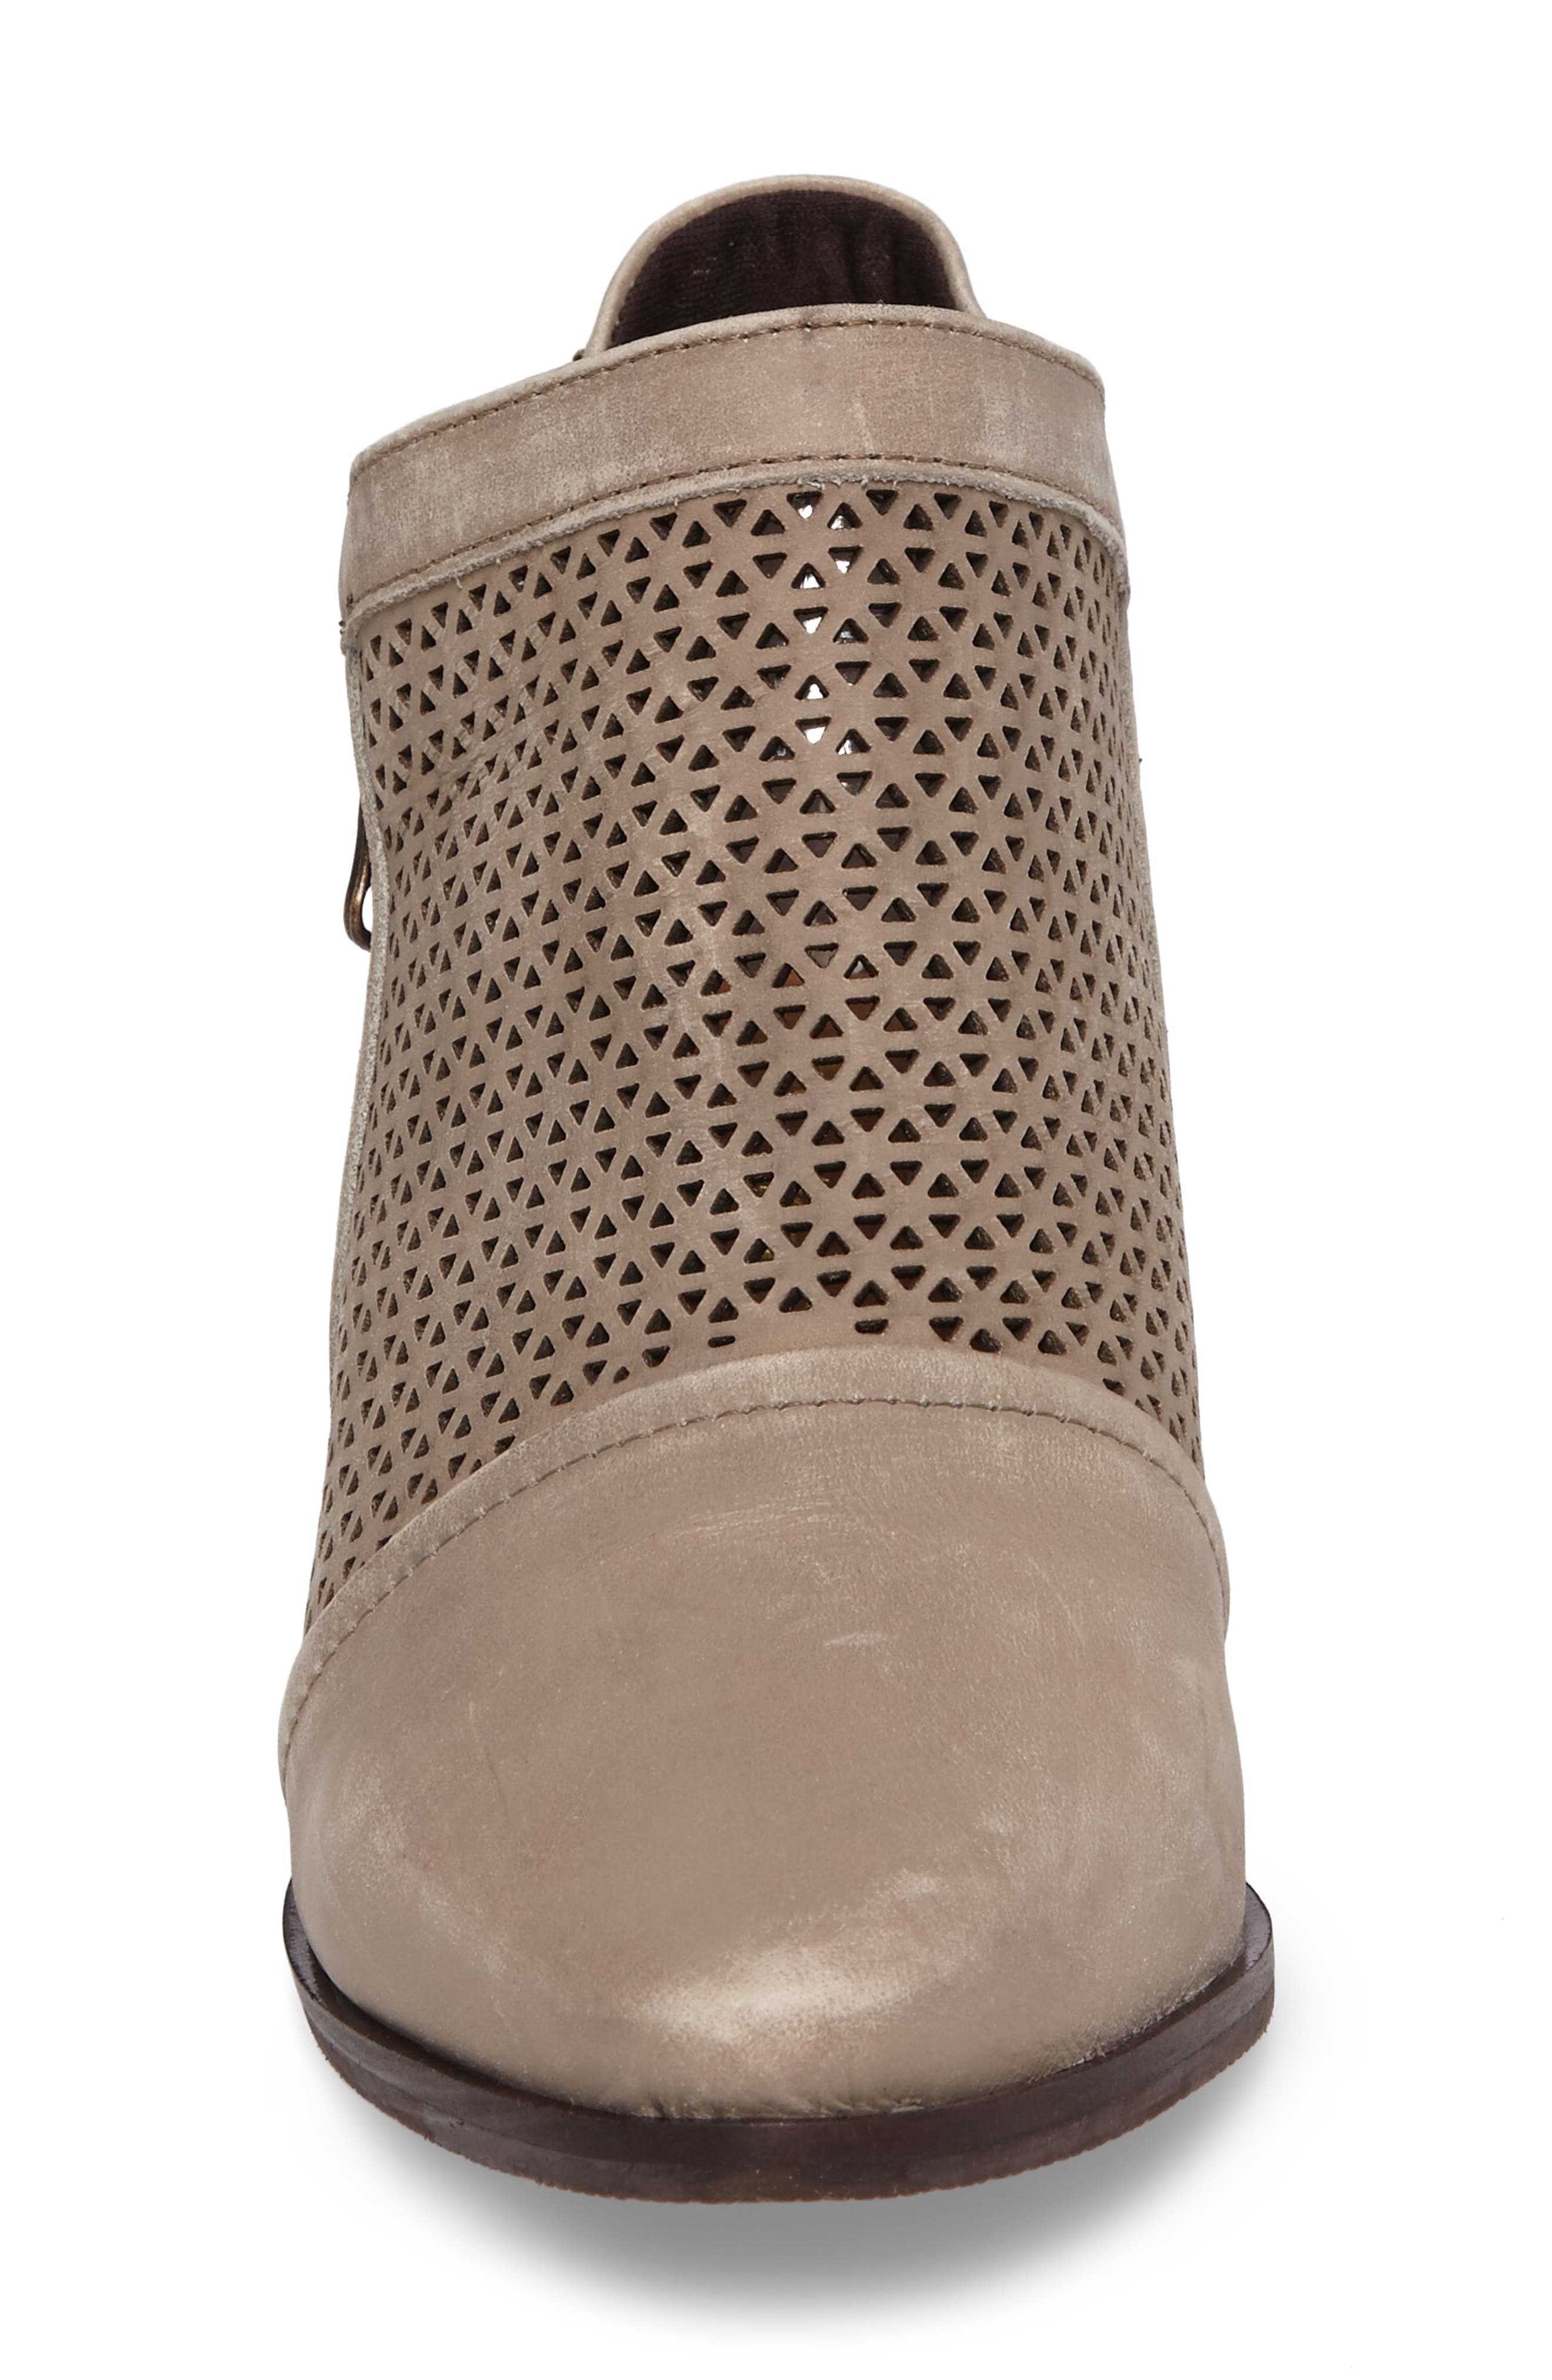 Zayna Bootie,                             Alternate thumbnail 4, color,                             Taupe Suede